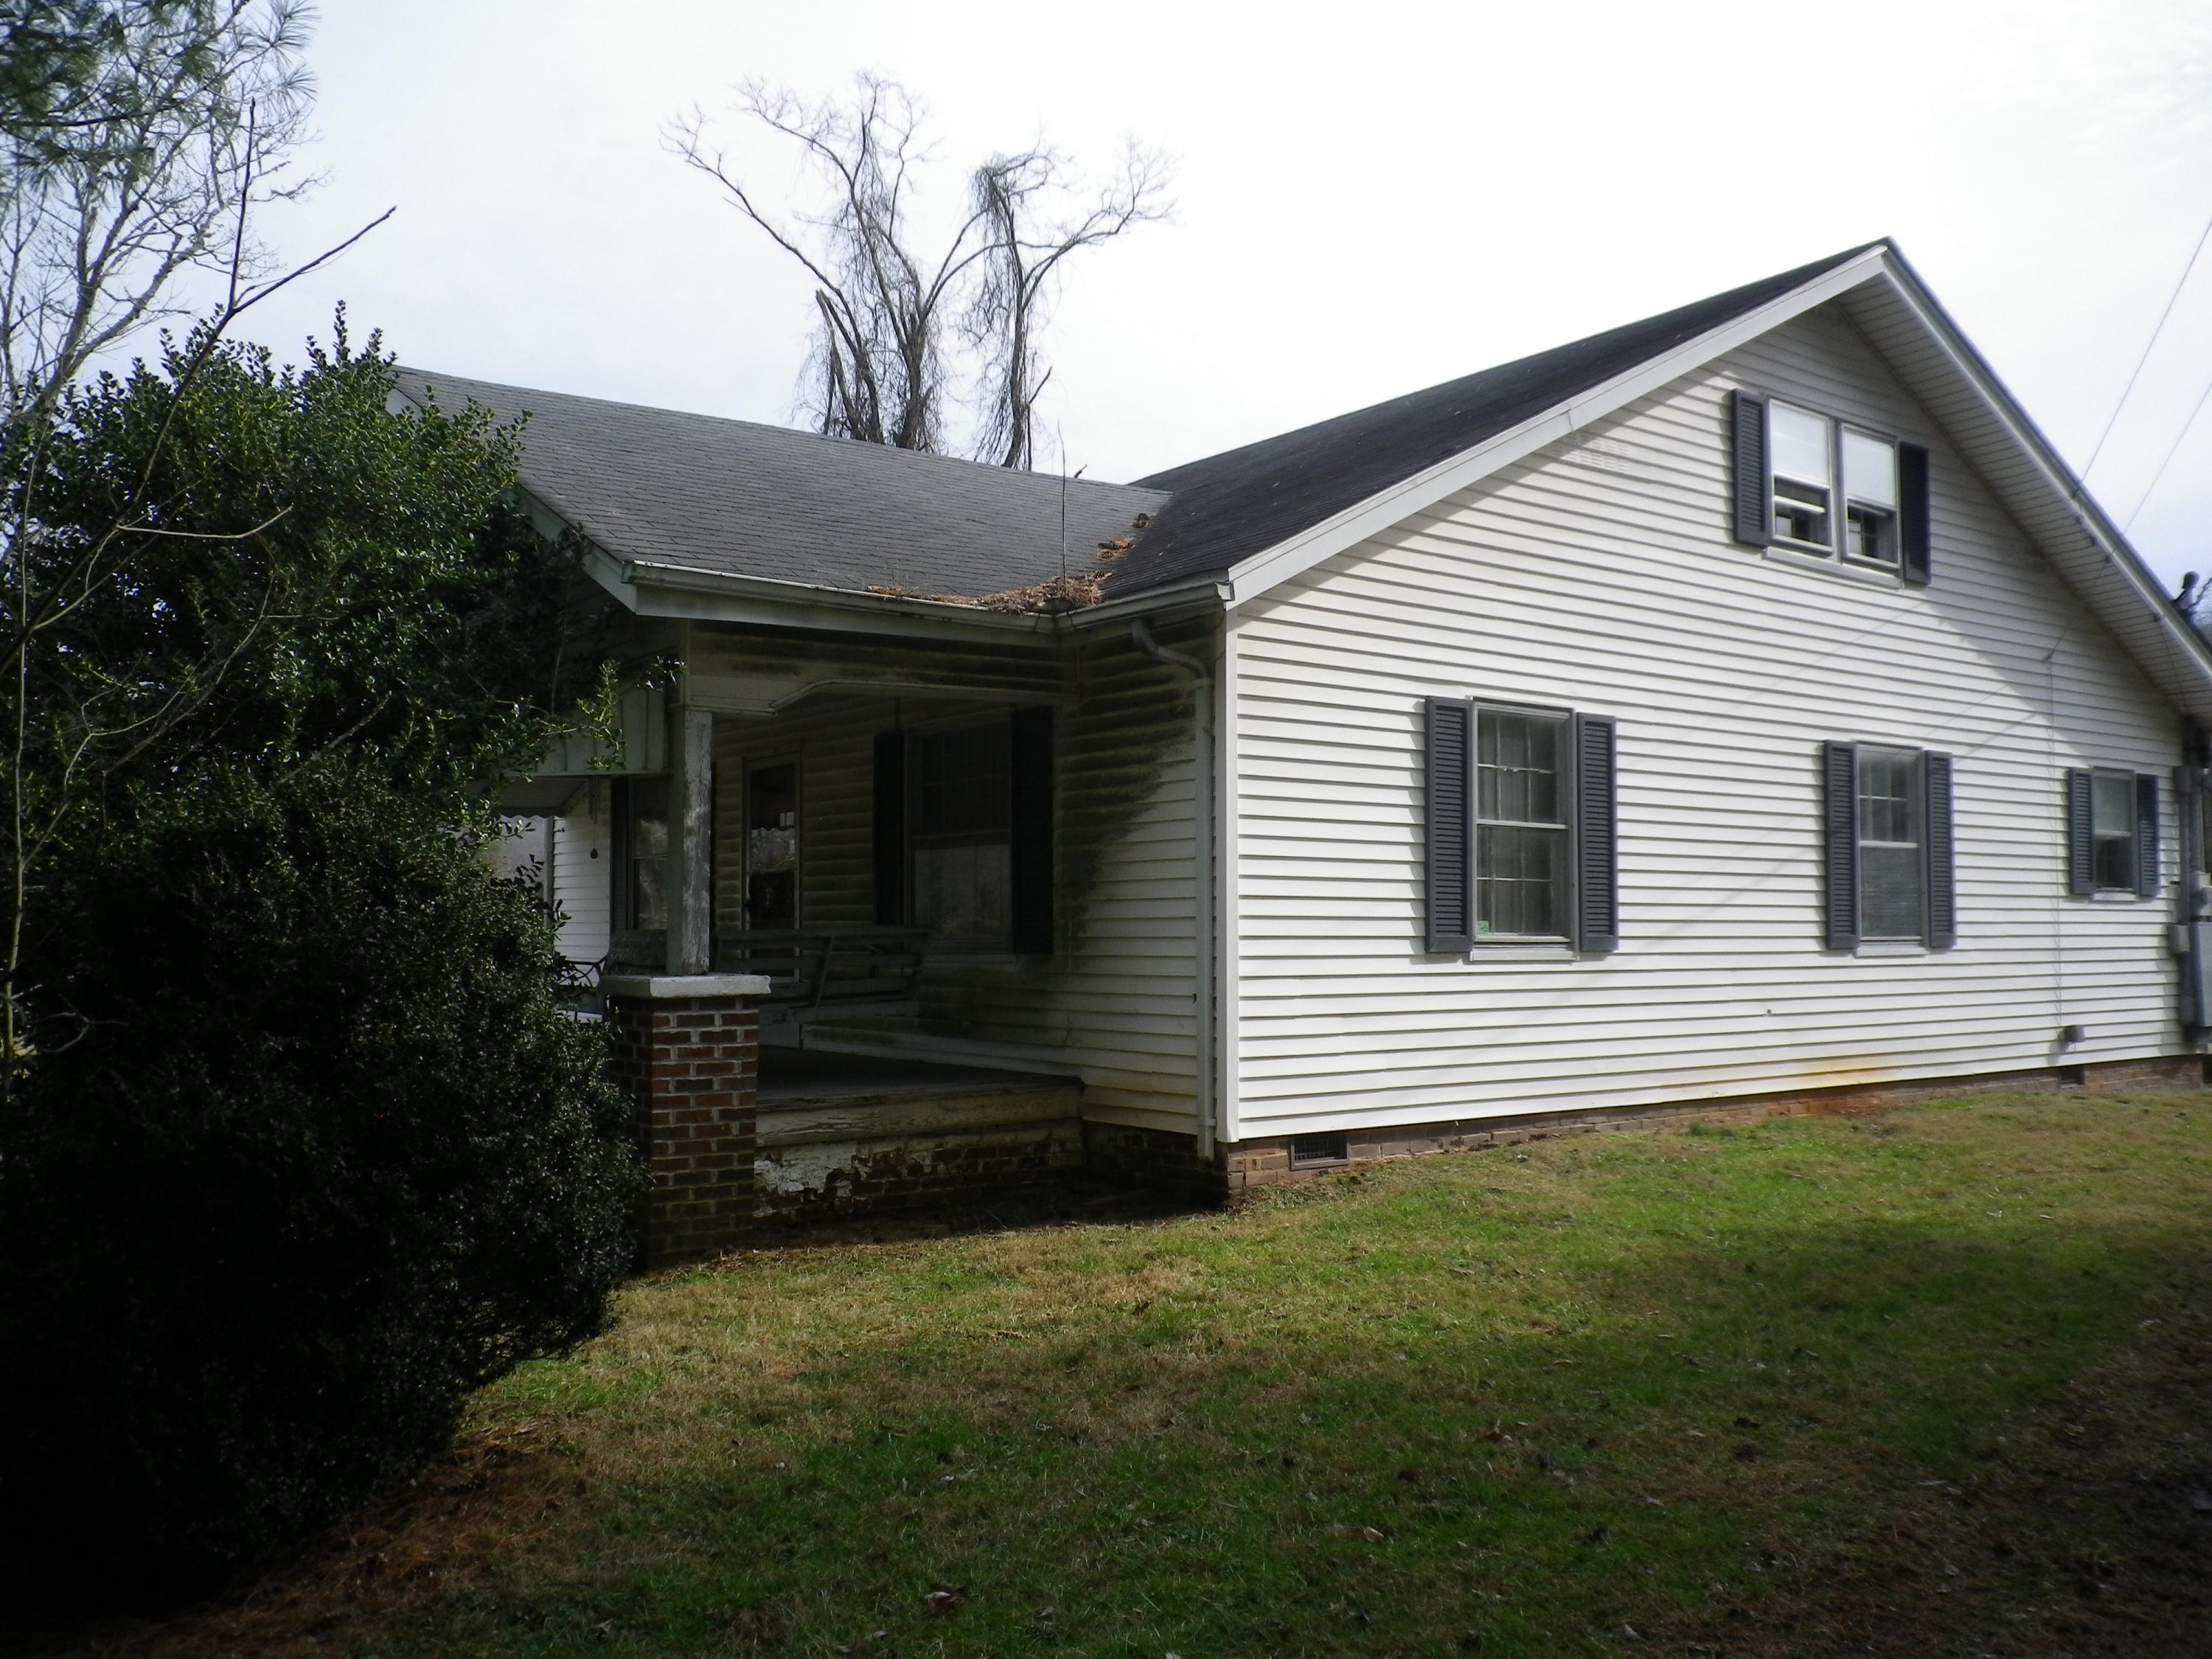 20180122214108546268000000-o Listings anderson county homes for sale